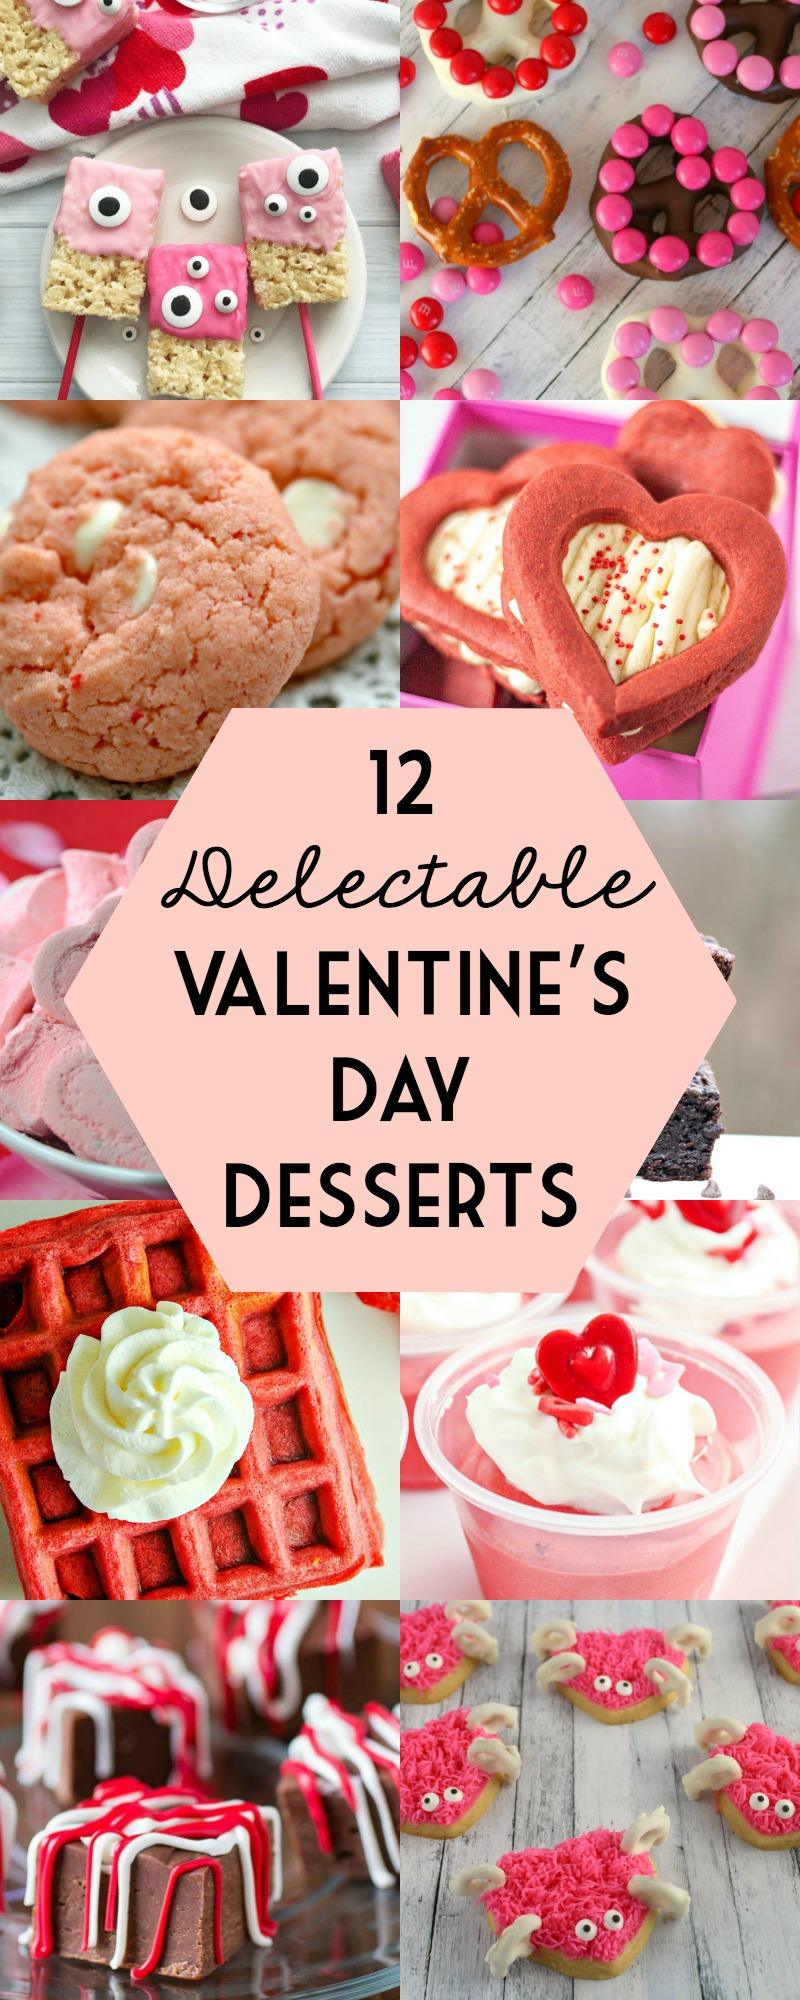 Delectable Valentine's Day Desserts